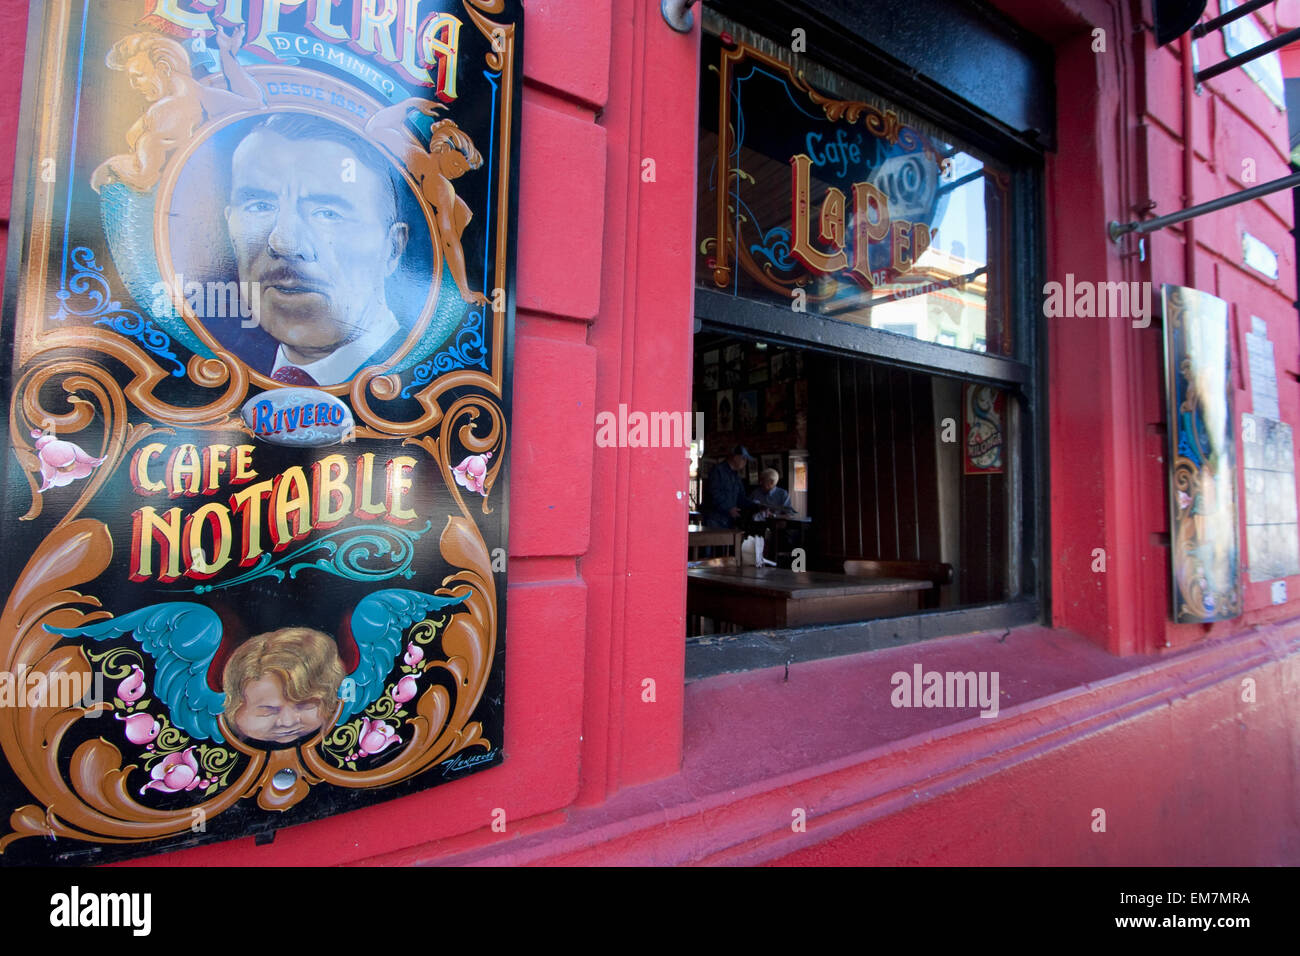 Cafe Notable, The pearl of Caminito in Barrio La Boca, Buenos Aires, Capital Federal, Argentina - Stock Image